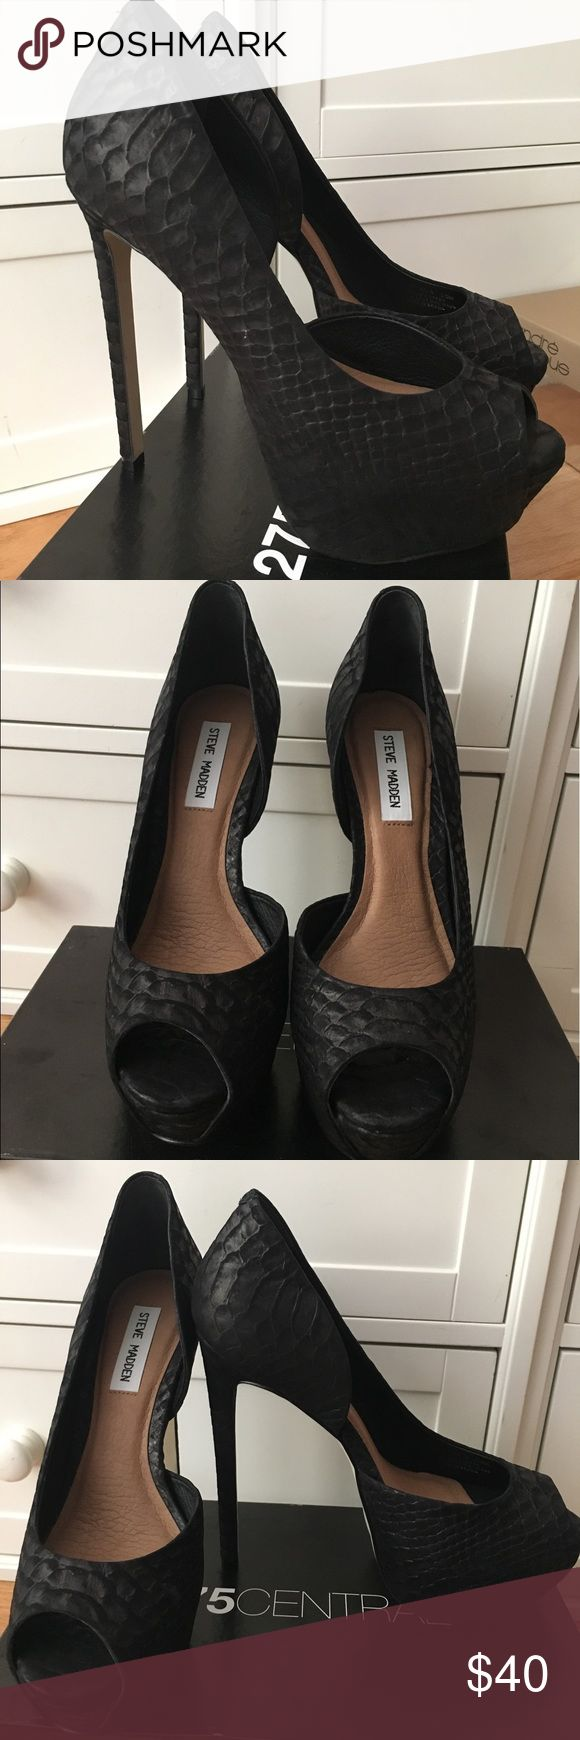 BRAND NEW Steve Madden Black Heels Never been worn new black heels from Steve Madden. A high heel that makes your legs look amazing while giving you lots of height. 4 1/2 inch heel. Small toe opening. Great for summer or winter parties or nights out Steve Madden Shoes Heels